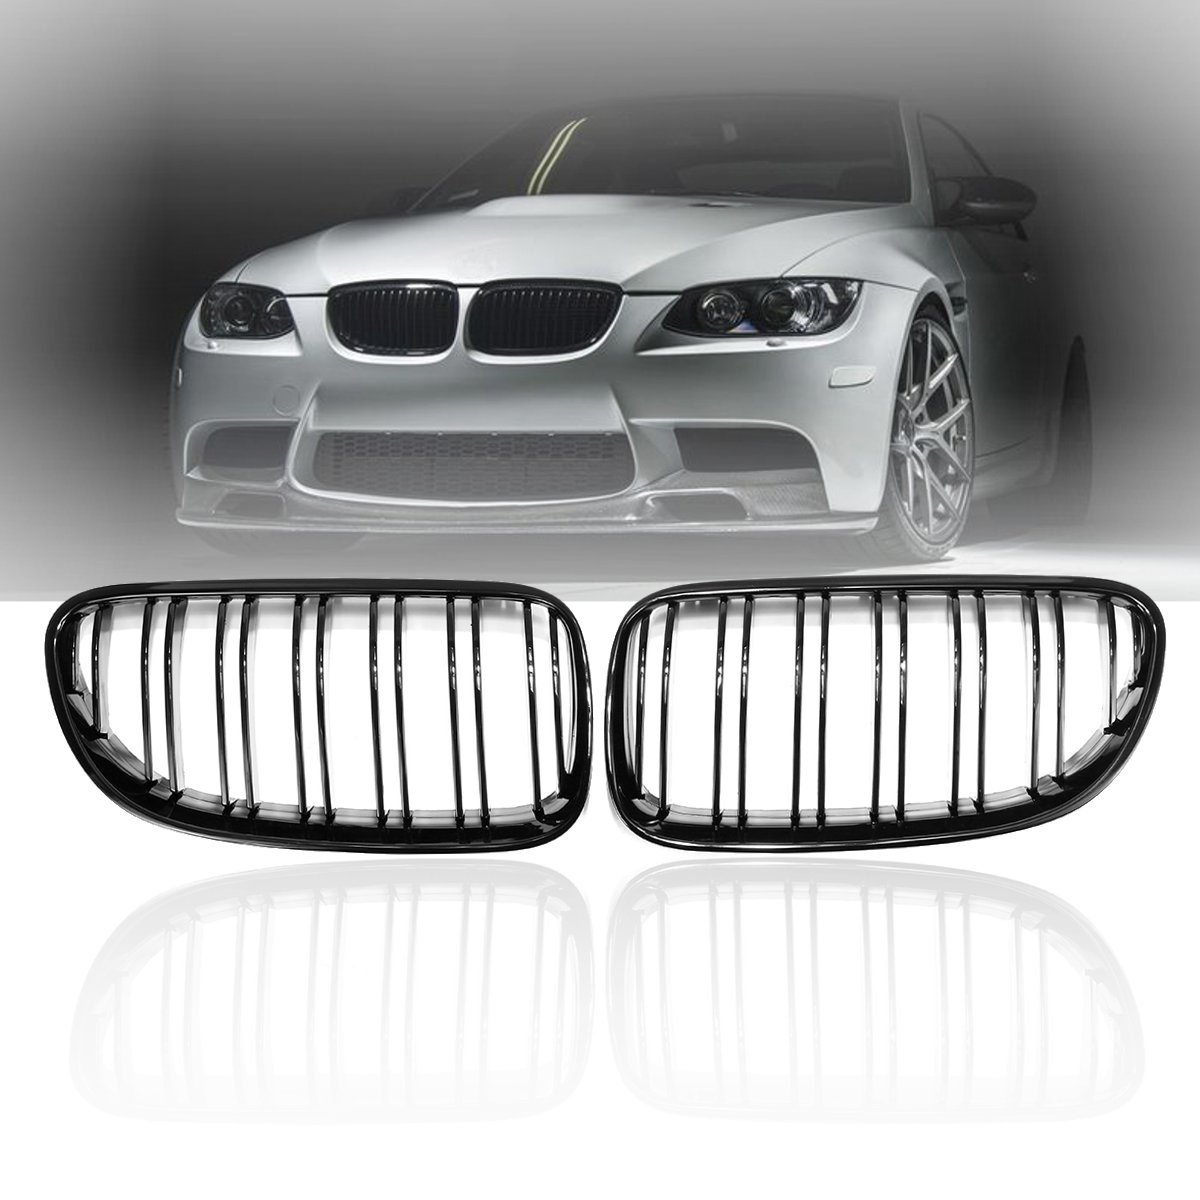 Pair Gloss Matt Black M Color Front Kidney Grill Grille Dual Line Slat For BMW E92 E93 328i 335i 2010 2011 2012 2013 2014 car bight glossy black double slat front grille grill for bmw e92 lci facelift e93 2011 2012 2013 c 5